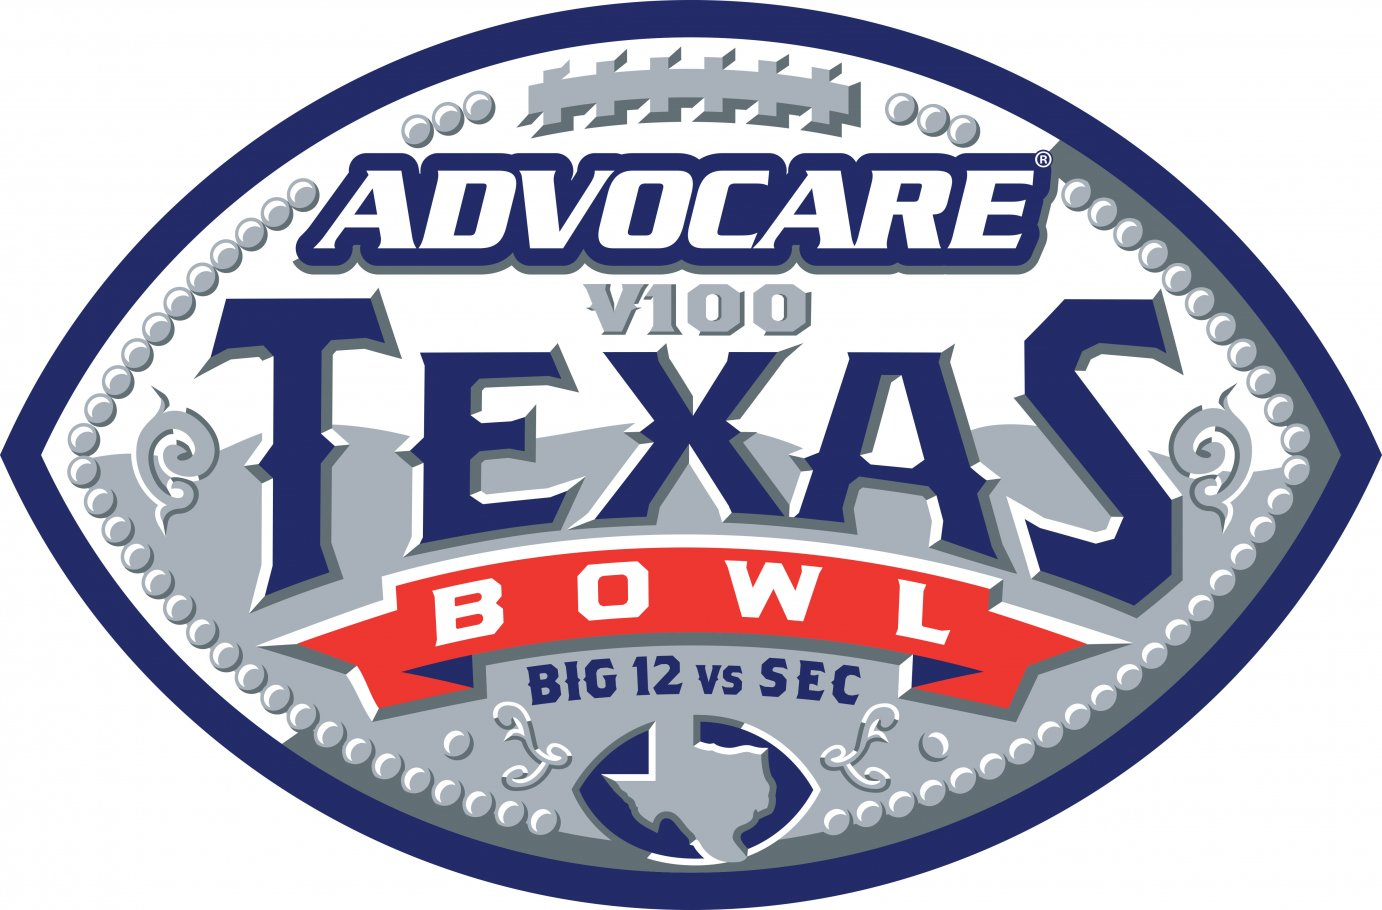 The K-State Wildcats take on the Aggies of Texas A&M in tonight's (WED) Texas Bowl in Houston.